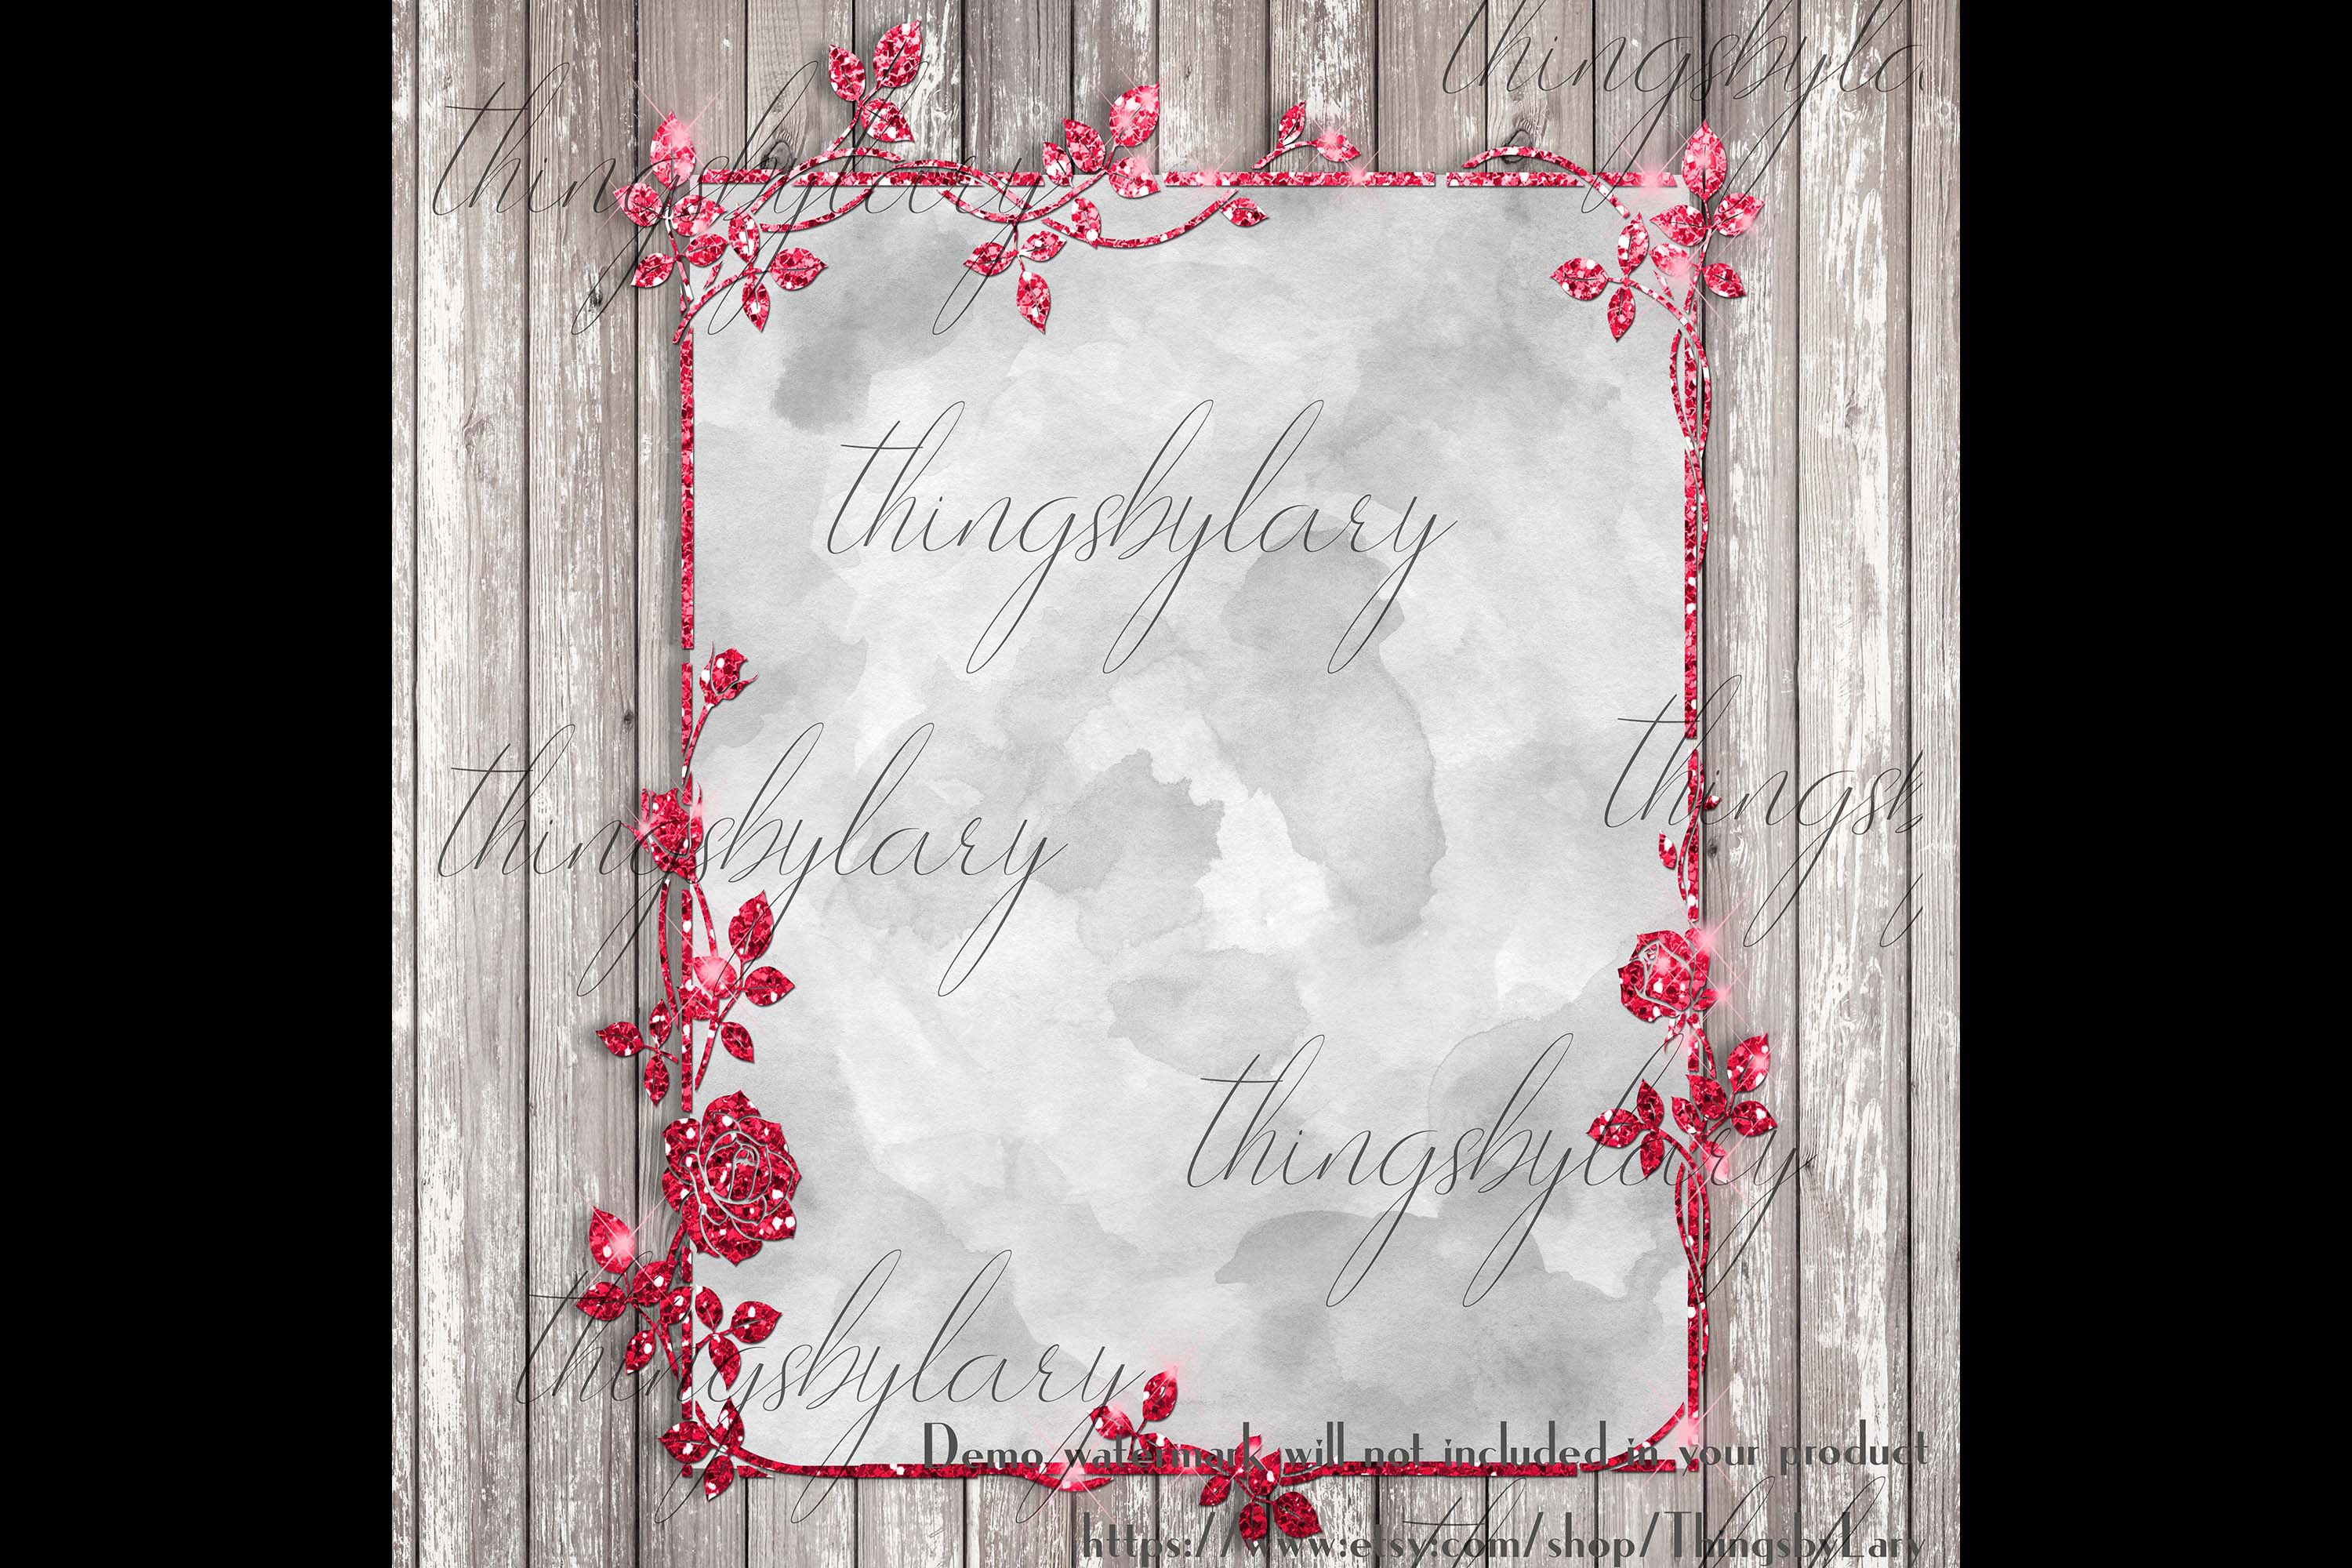 18 Glitter and Watercolor Leaf Branch Floral Frame Card example image 4